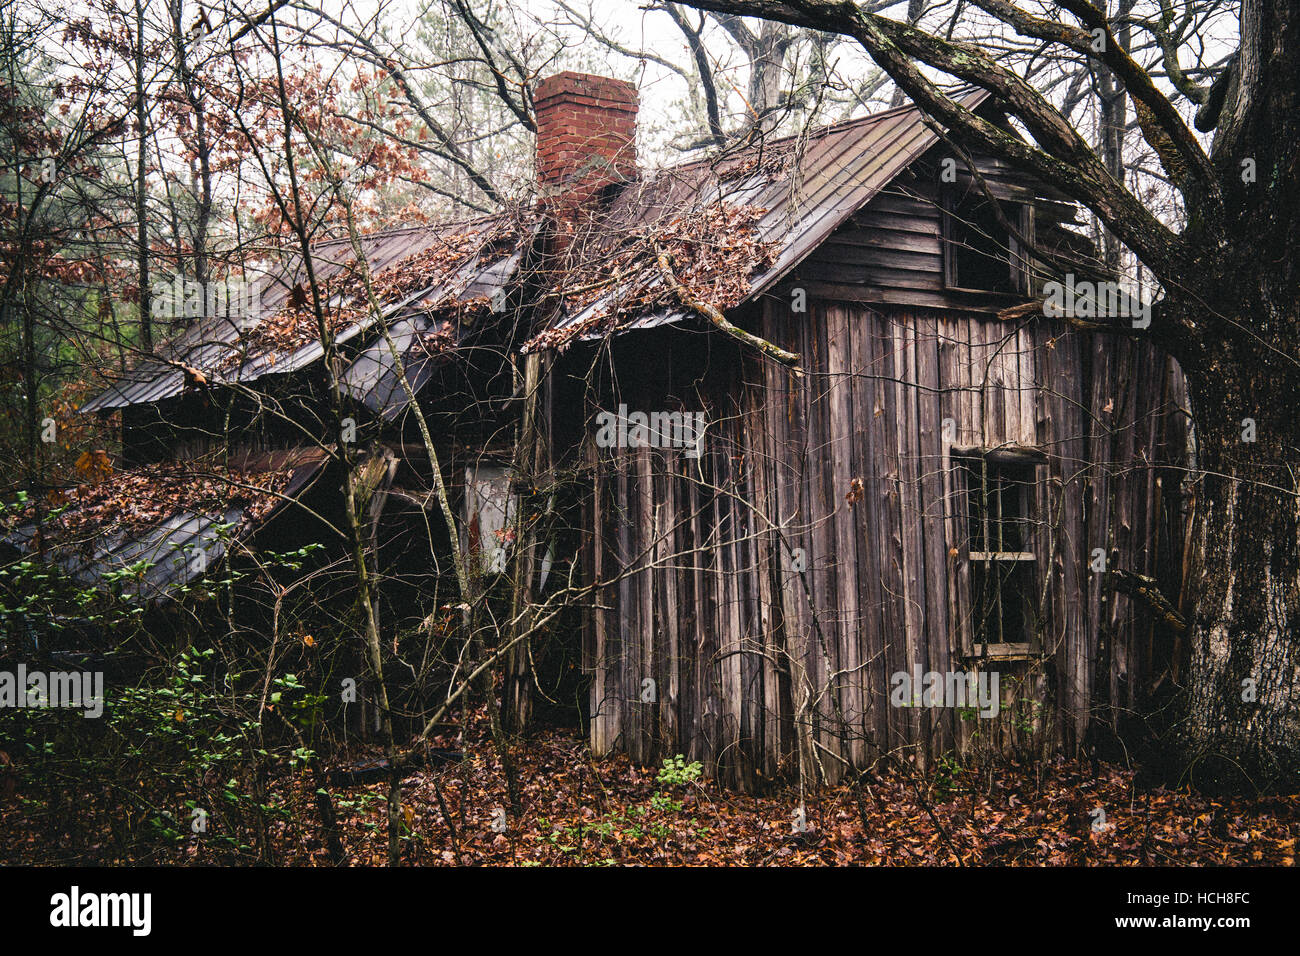 Captivating Abandoned, Overgrown House Falling Apart In The Woods